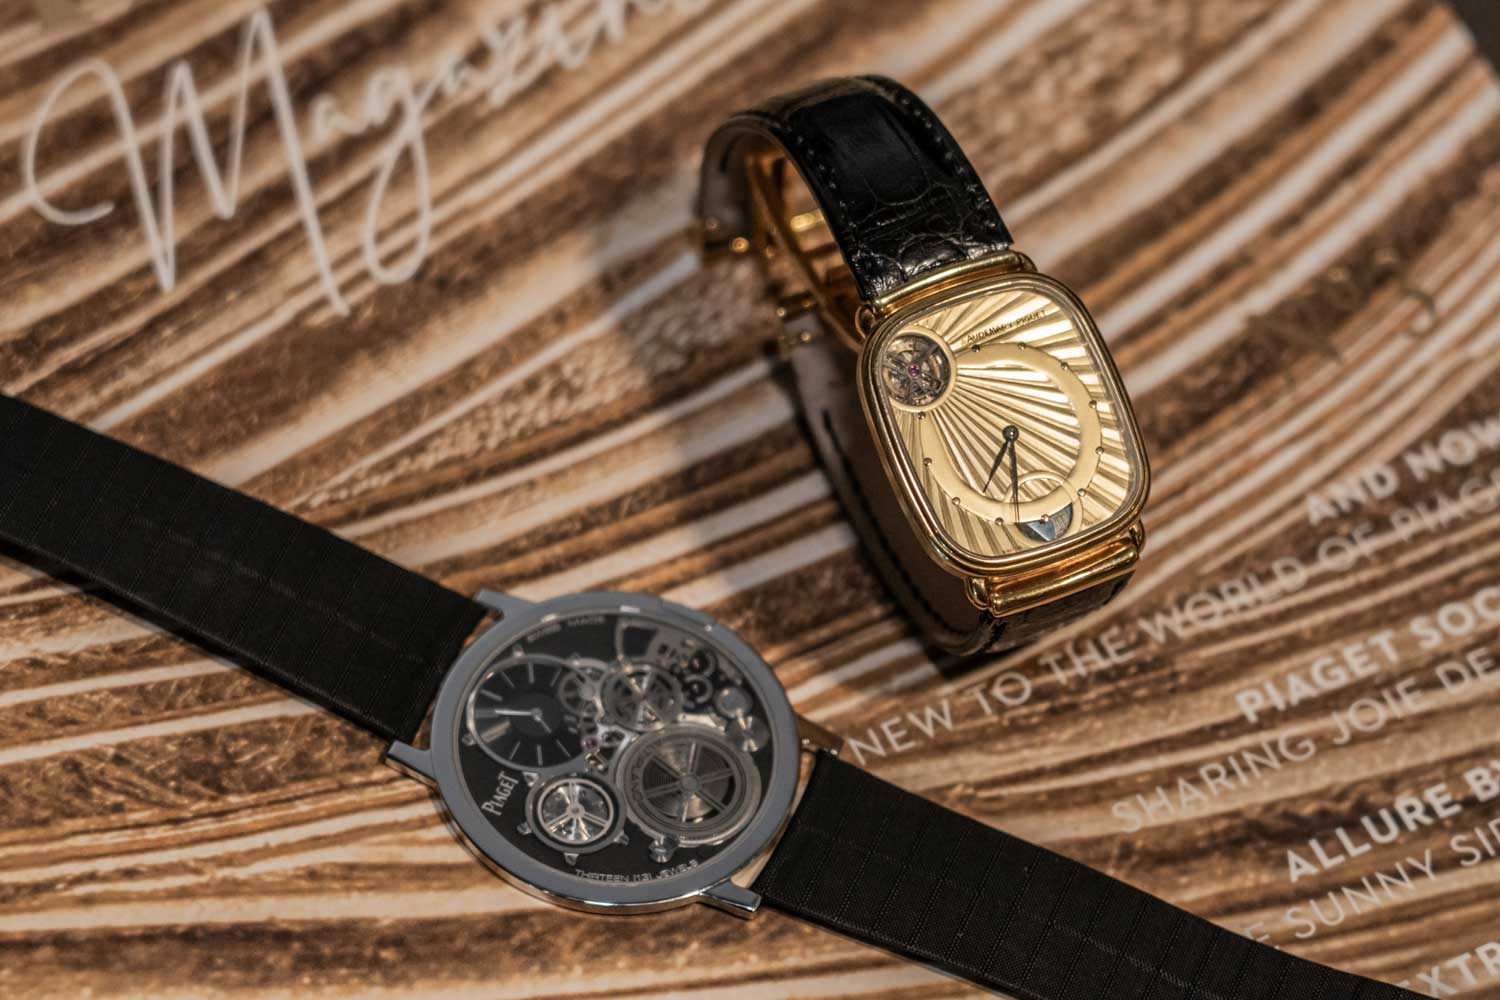 The 1986 Jacqueline Dimier designed Audemars Piguet ultra-thin automatic tourbillon timepiece seen here next to the Altiplano Ultimate Concept, which no doubt share a certain sense of lineage (©Revolution)